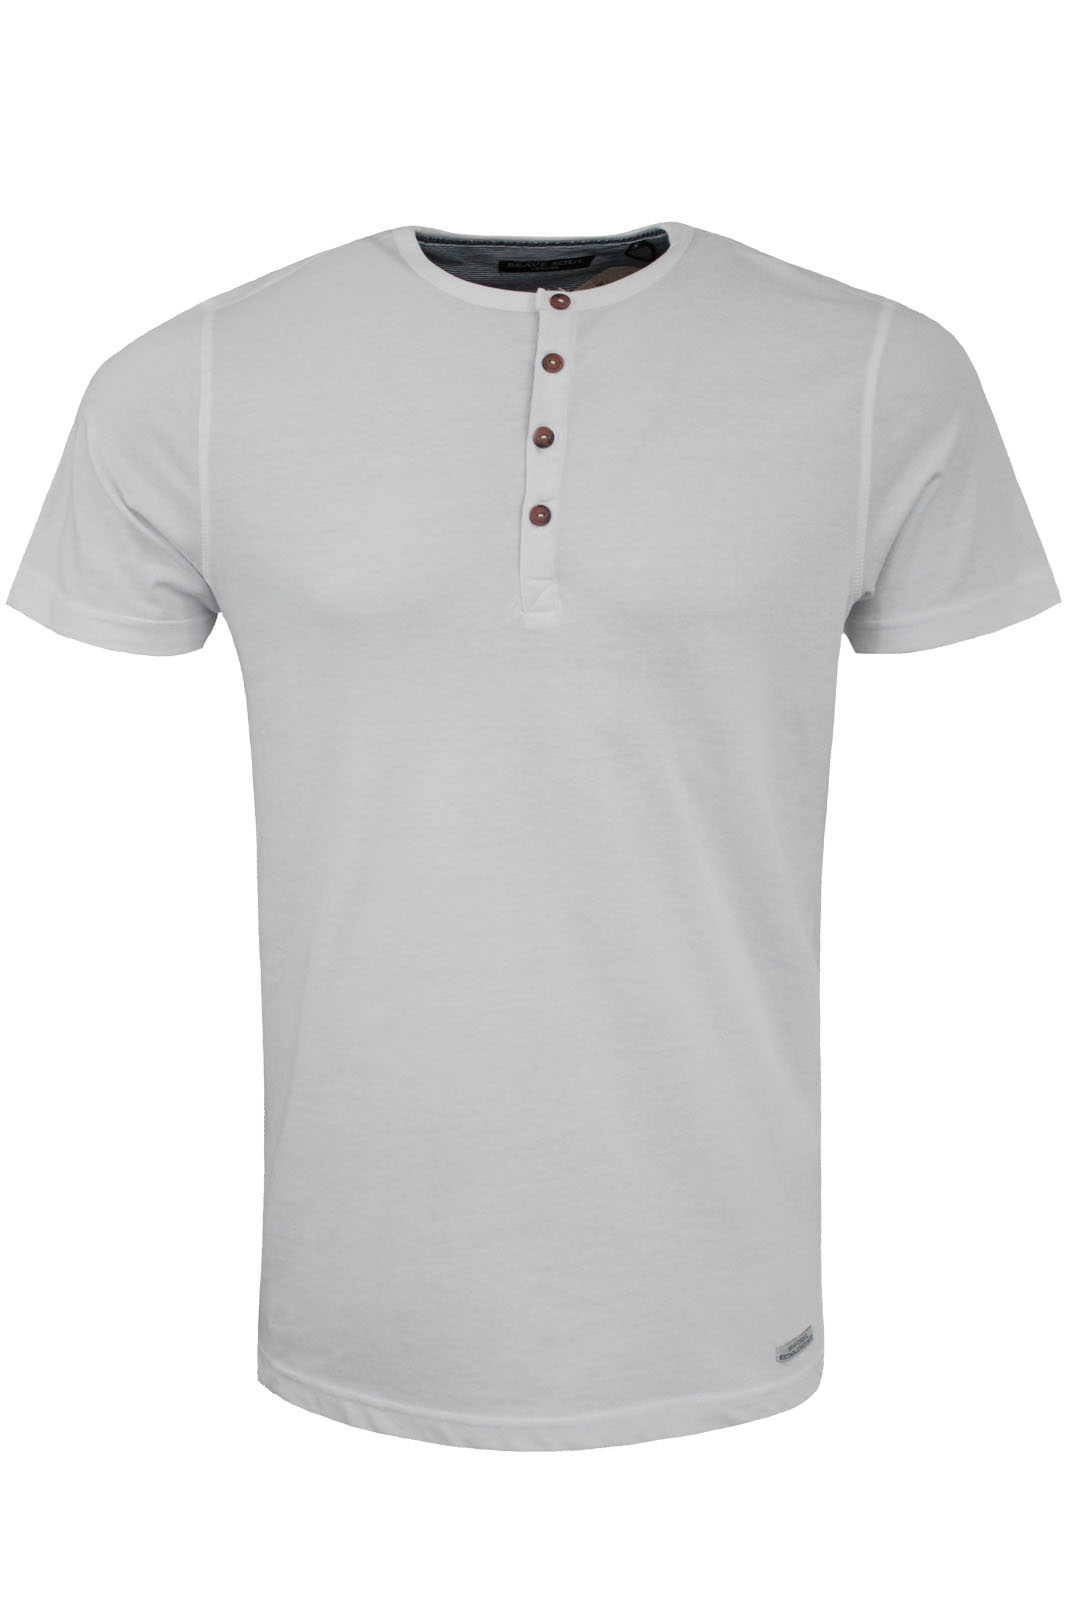 Mens designer henley style t shirt by brave soul grandad for Mens collared henley shirt